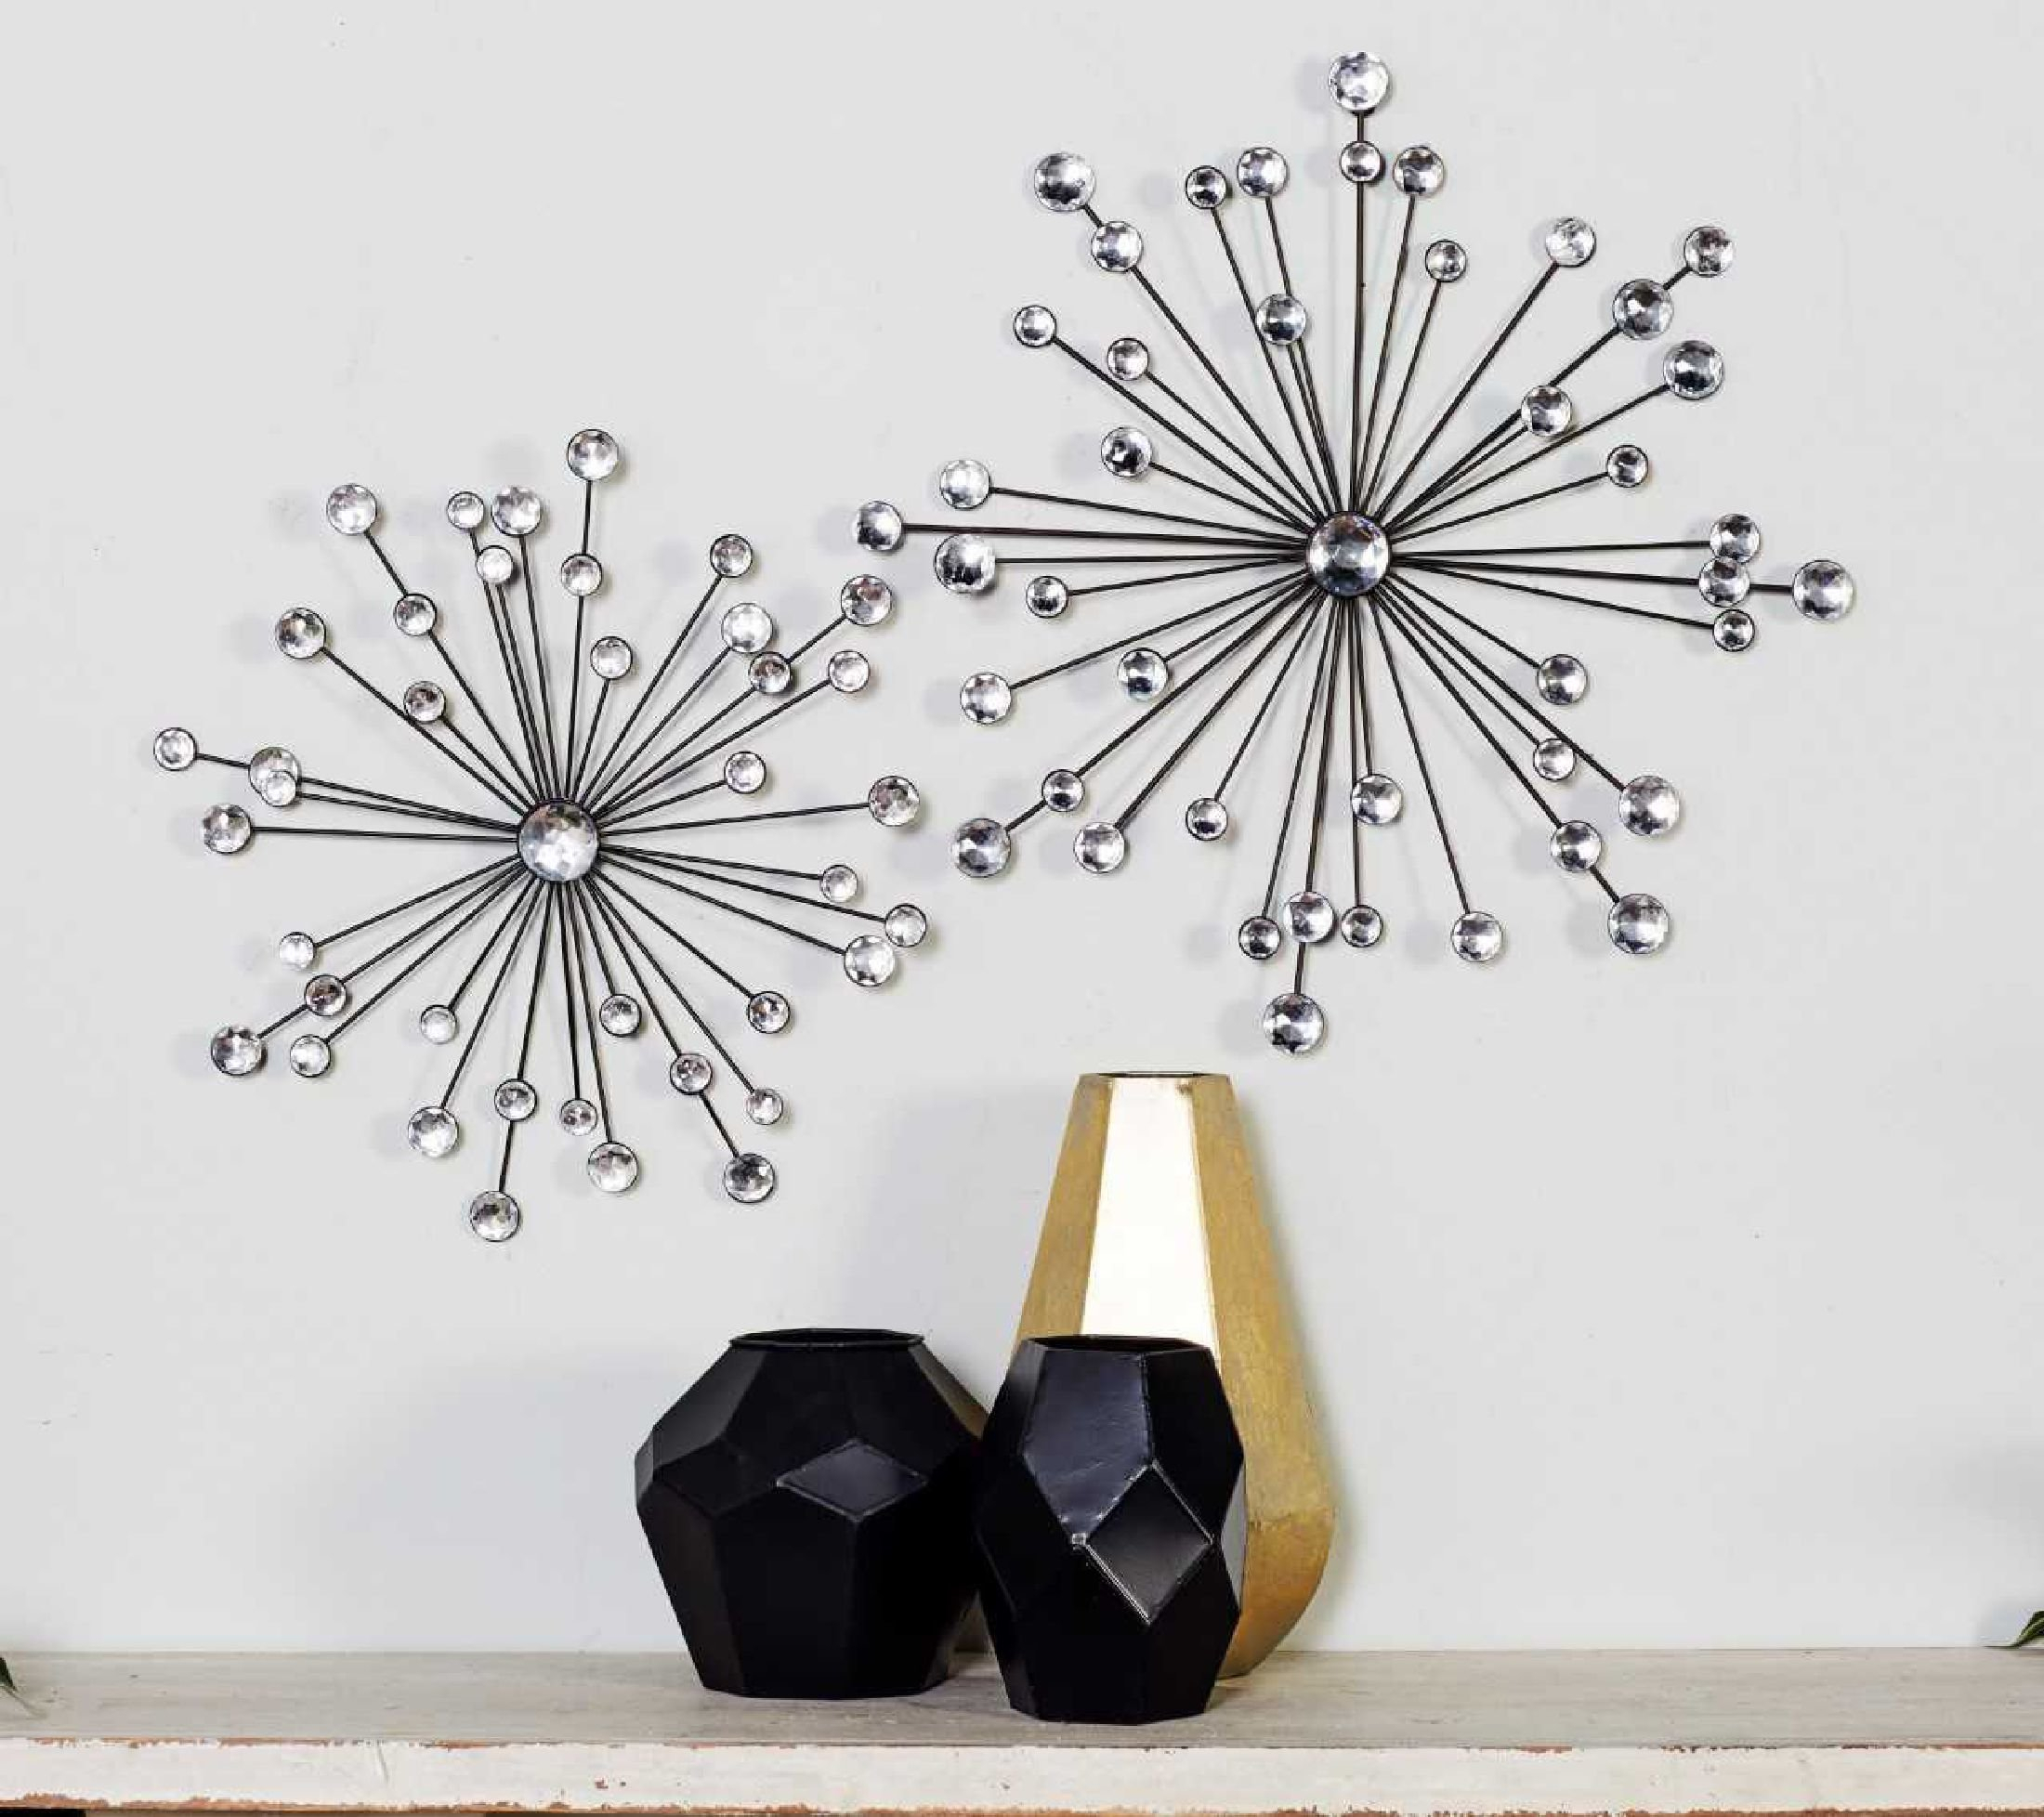 Wayfair Intended For Well Liked 3 Piece Wall Decor Sets By Wrought Studio (View 7 of 20)